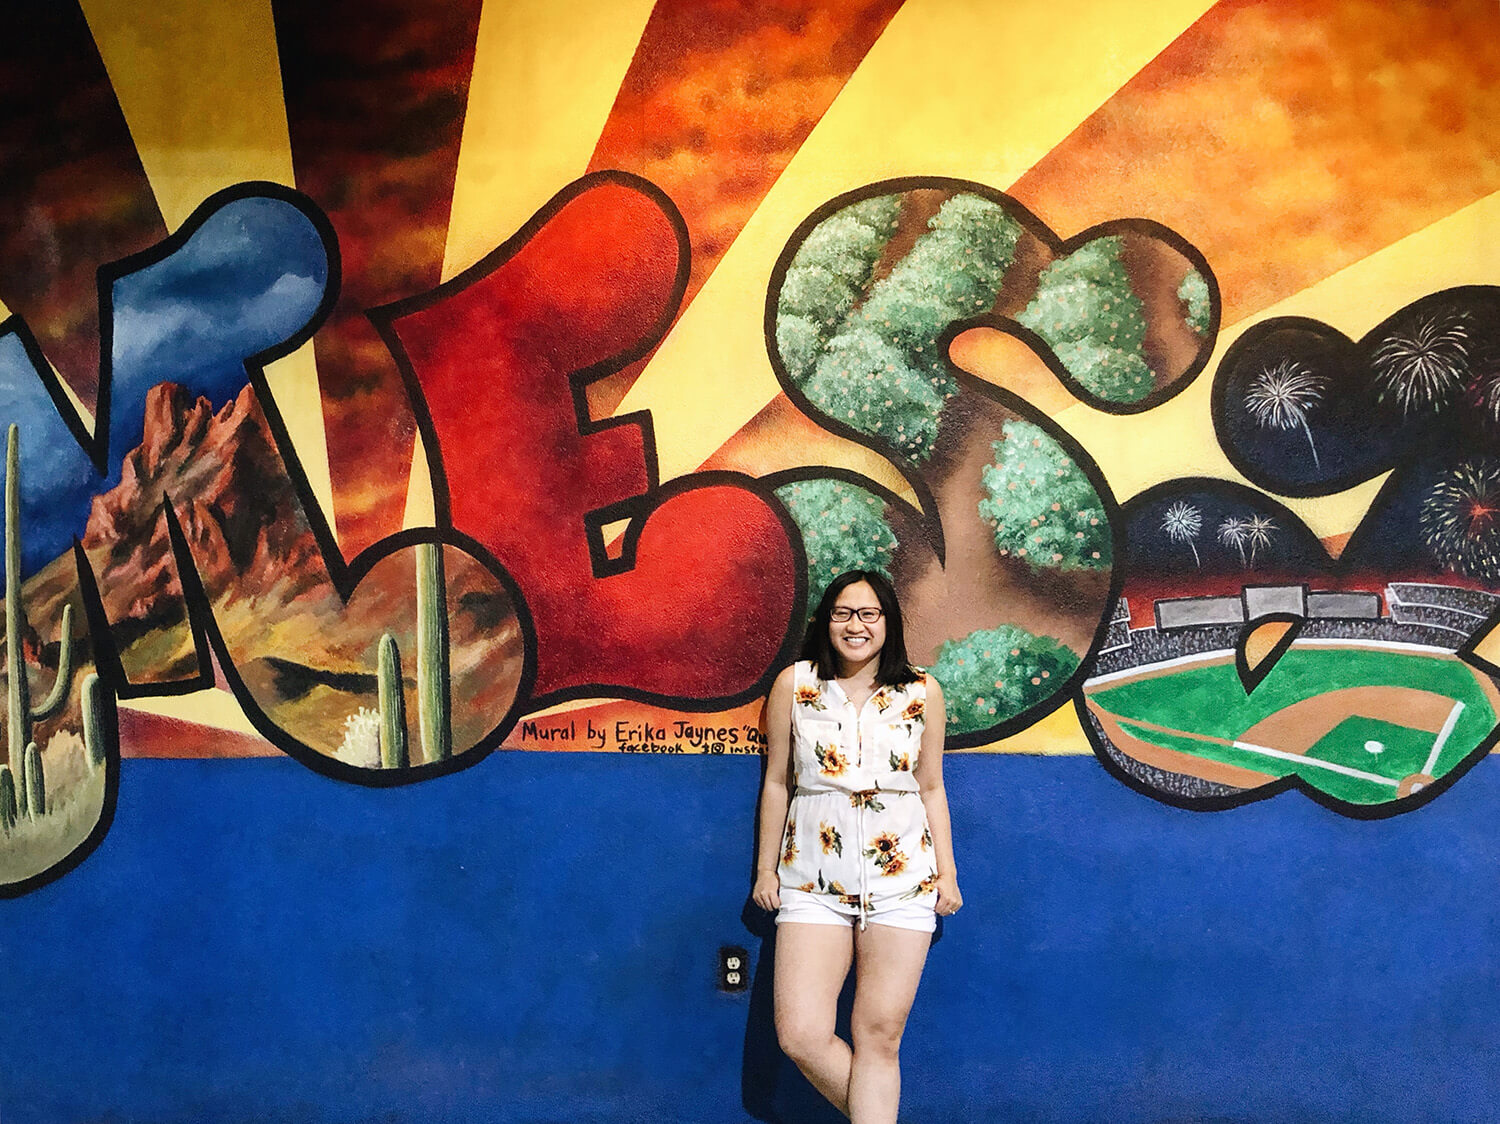 Instagrammable Walls of Mesa Arizona Murals - Travel Visit Downtown Mesa